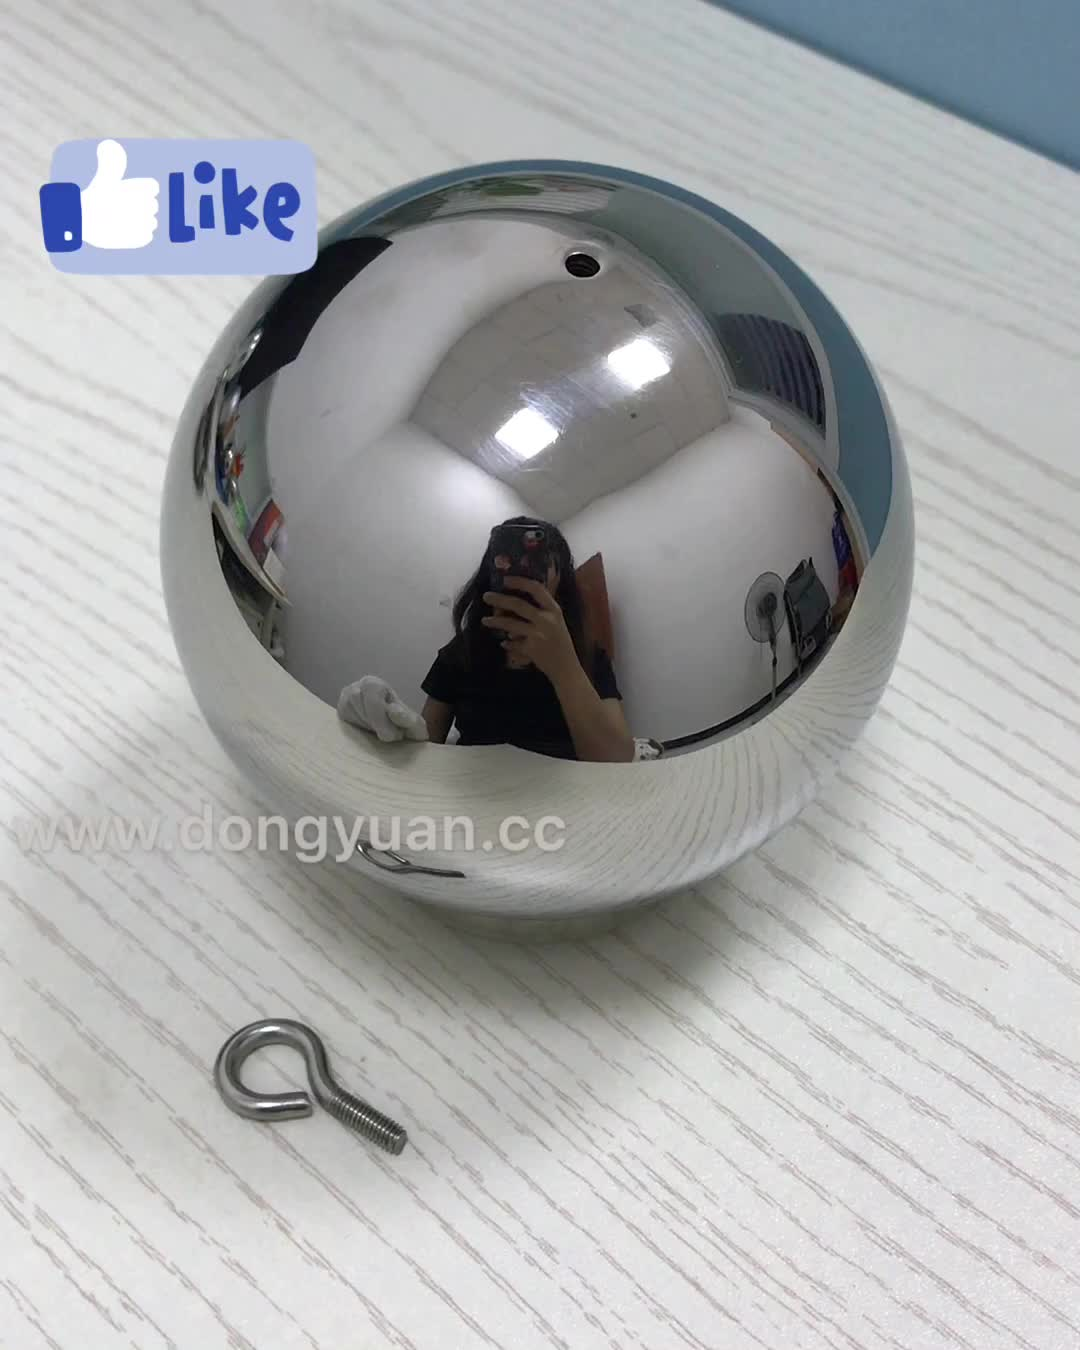 Hanging Stainless Steel Ball with Screw Loop for  Christmas Decoration